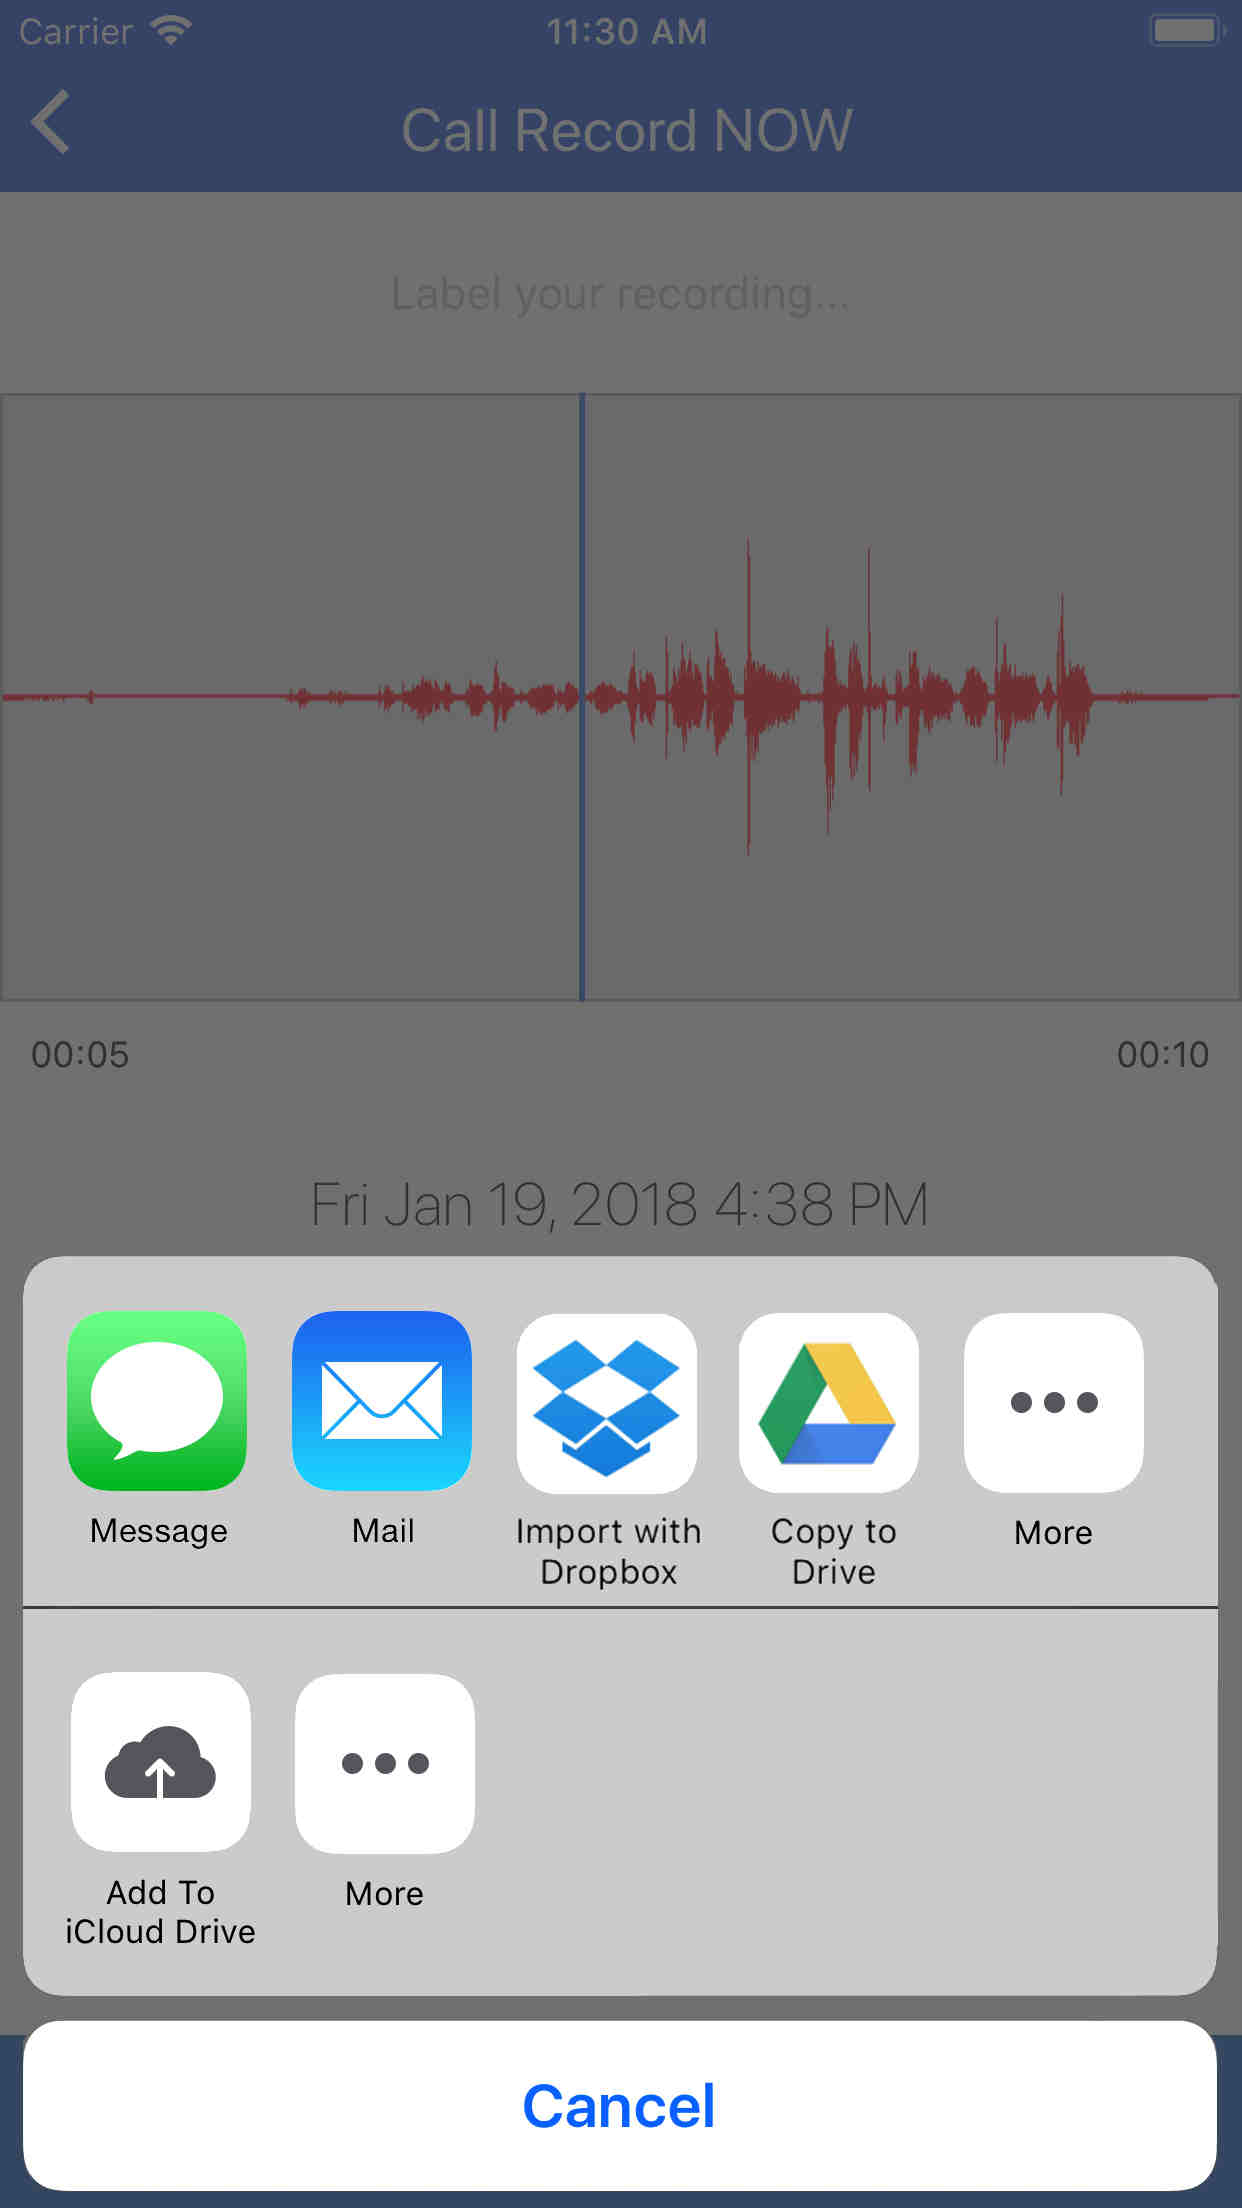 Call Record NOW: Call Recorder App for iPhone  Record any call on